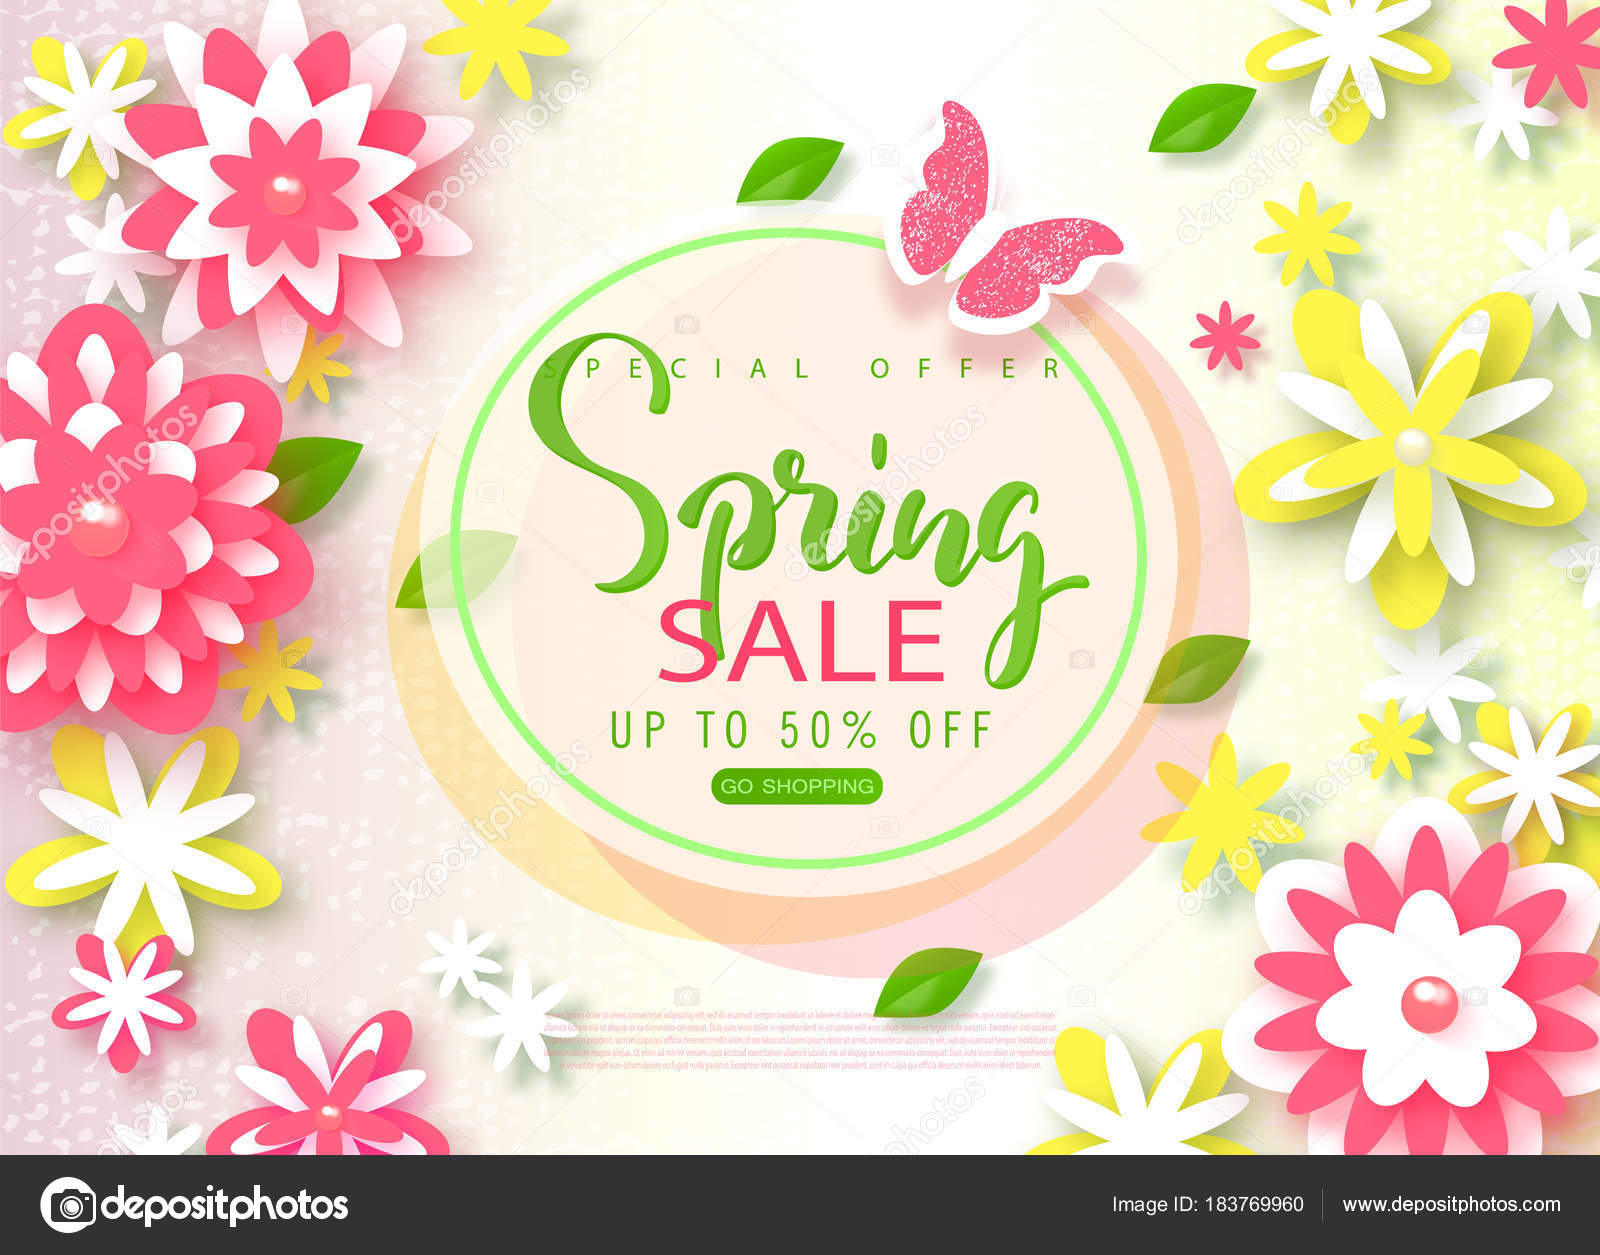 Spring sale banner beautiful background with paper flowers and spring sale banner beautiful background with paper flowers and butterfly vector illustration for website mightylinksfo